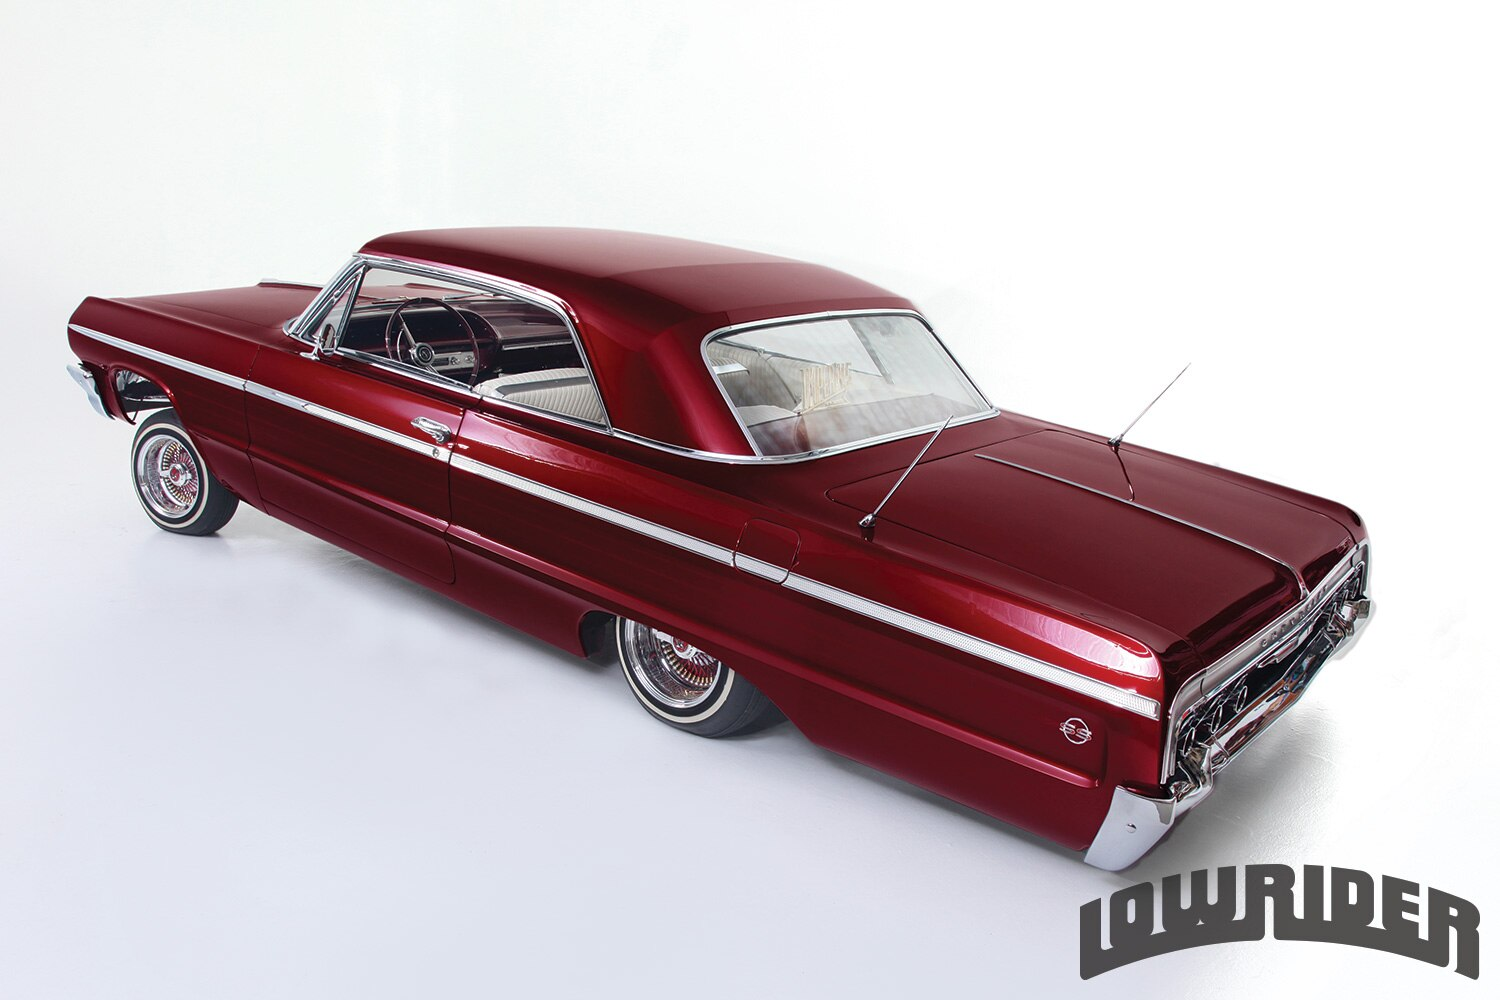 1964-chevrolet-impala-super-sport-rear-left-side-view1